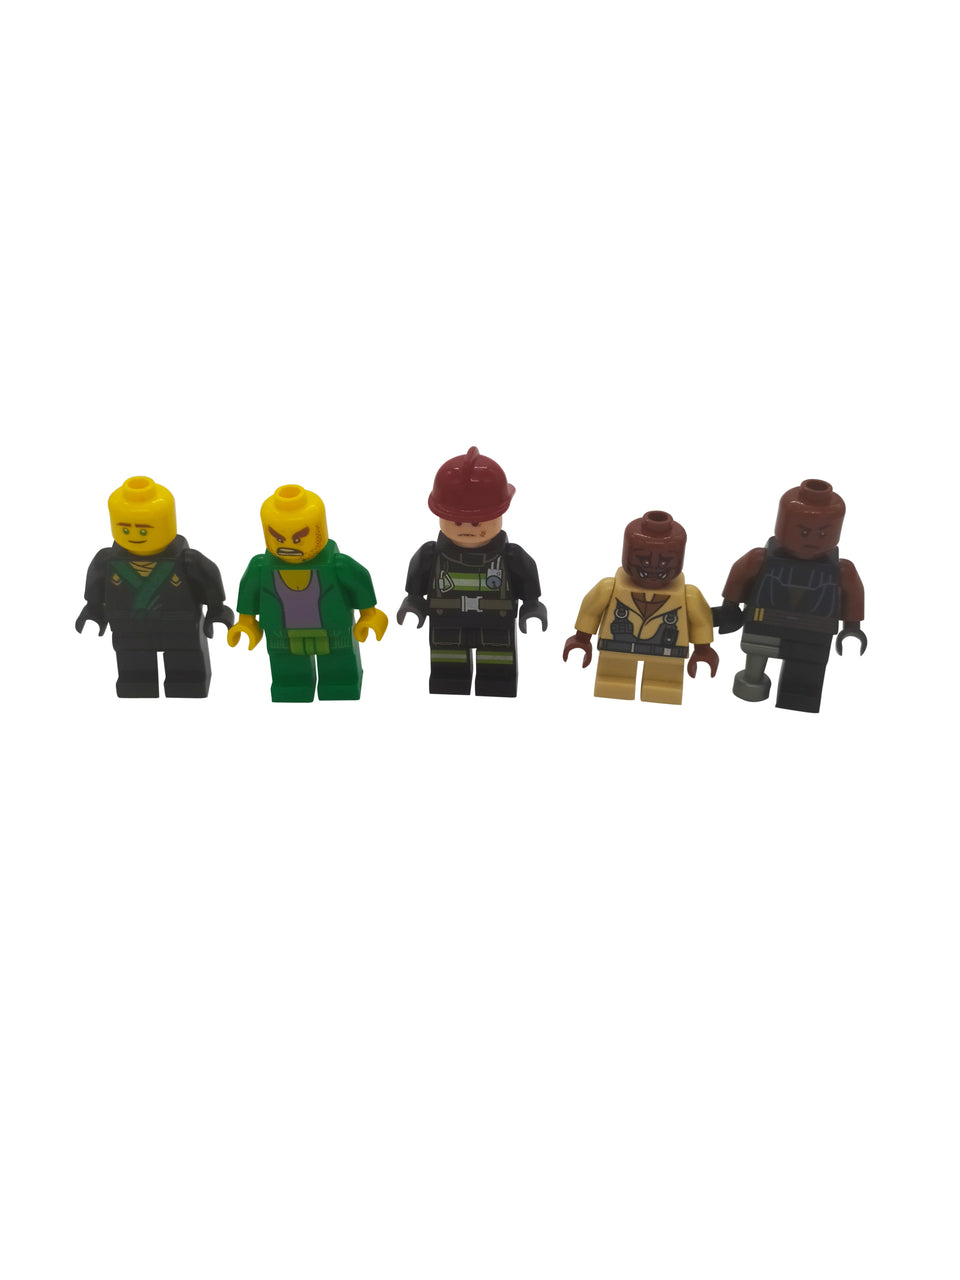 5 lot of lego special Minifigures #4